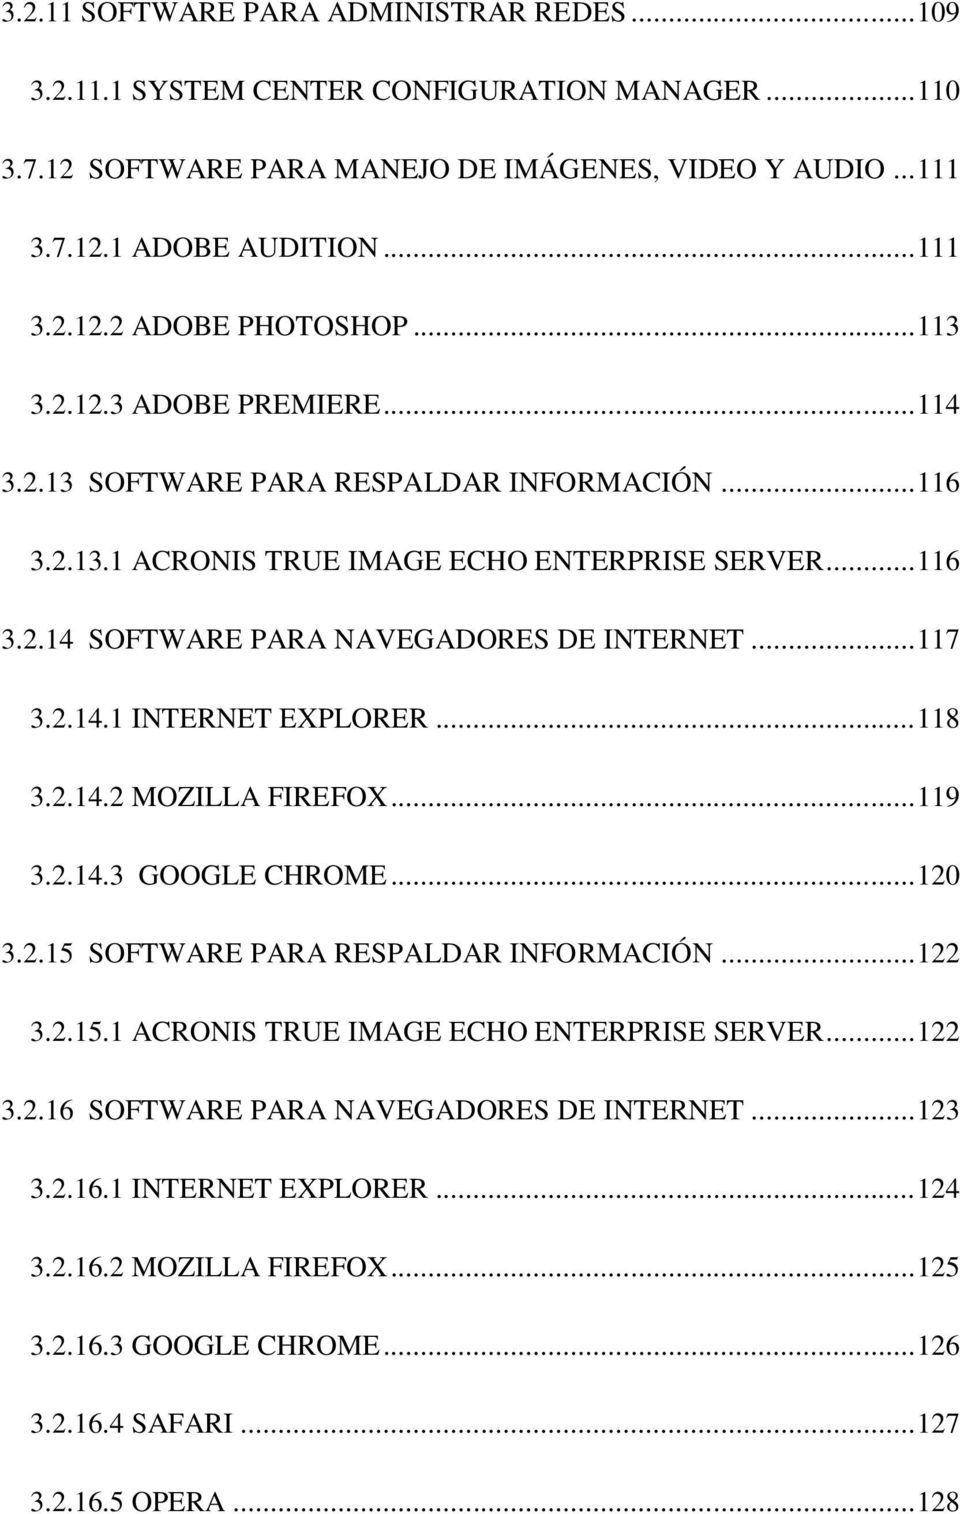 2.14.1 INTERNET EXPLORER... 118 3.2.14.2 MOZILLA FIREFOX... 119 3.2.14.3 GOOGLE CHROME... 120 3.2.15 SOFTWARE PARA RESPALDAR INFORMACIÓN... 122 3.2.15.1 ACRONIS TRUE IMAGE ECHO ENTERPRISE SERVER.